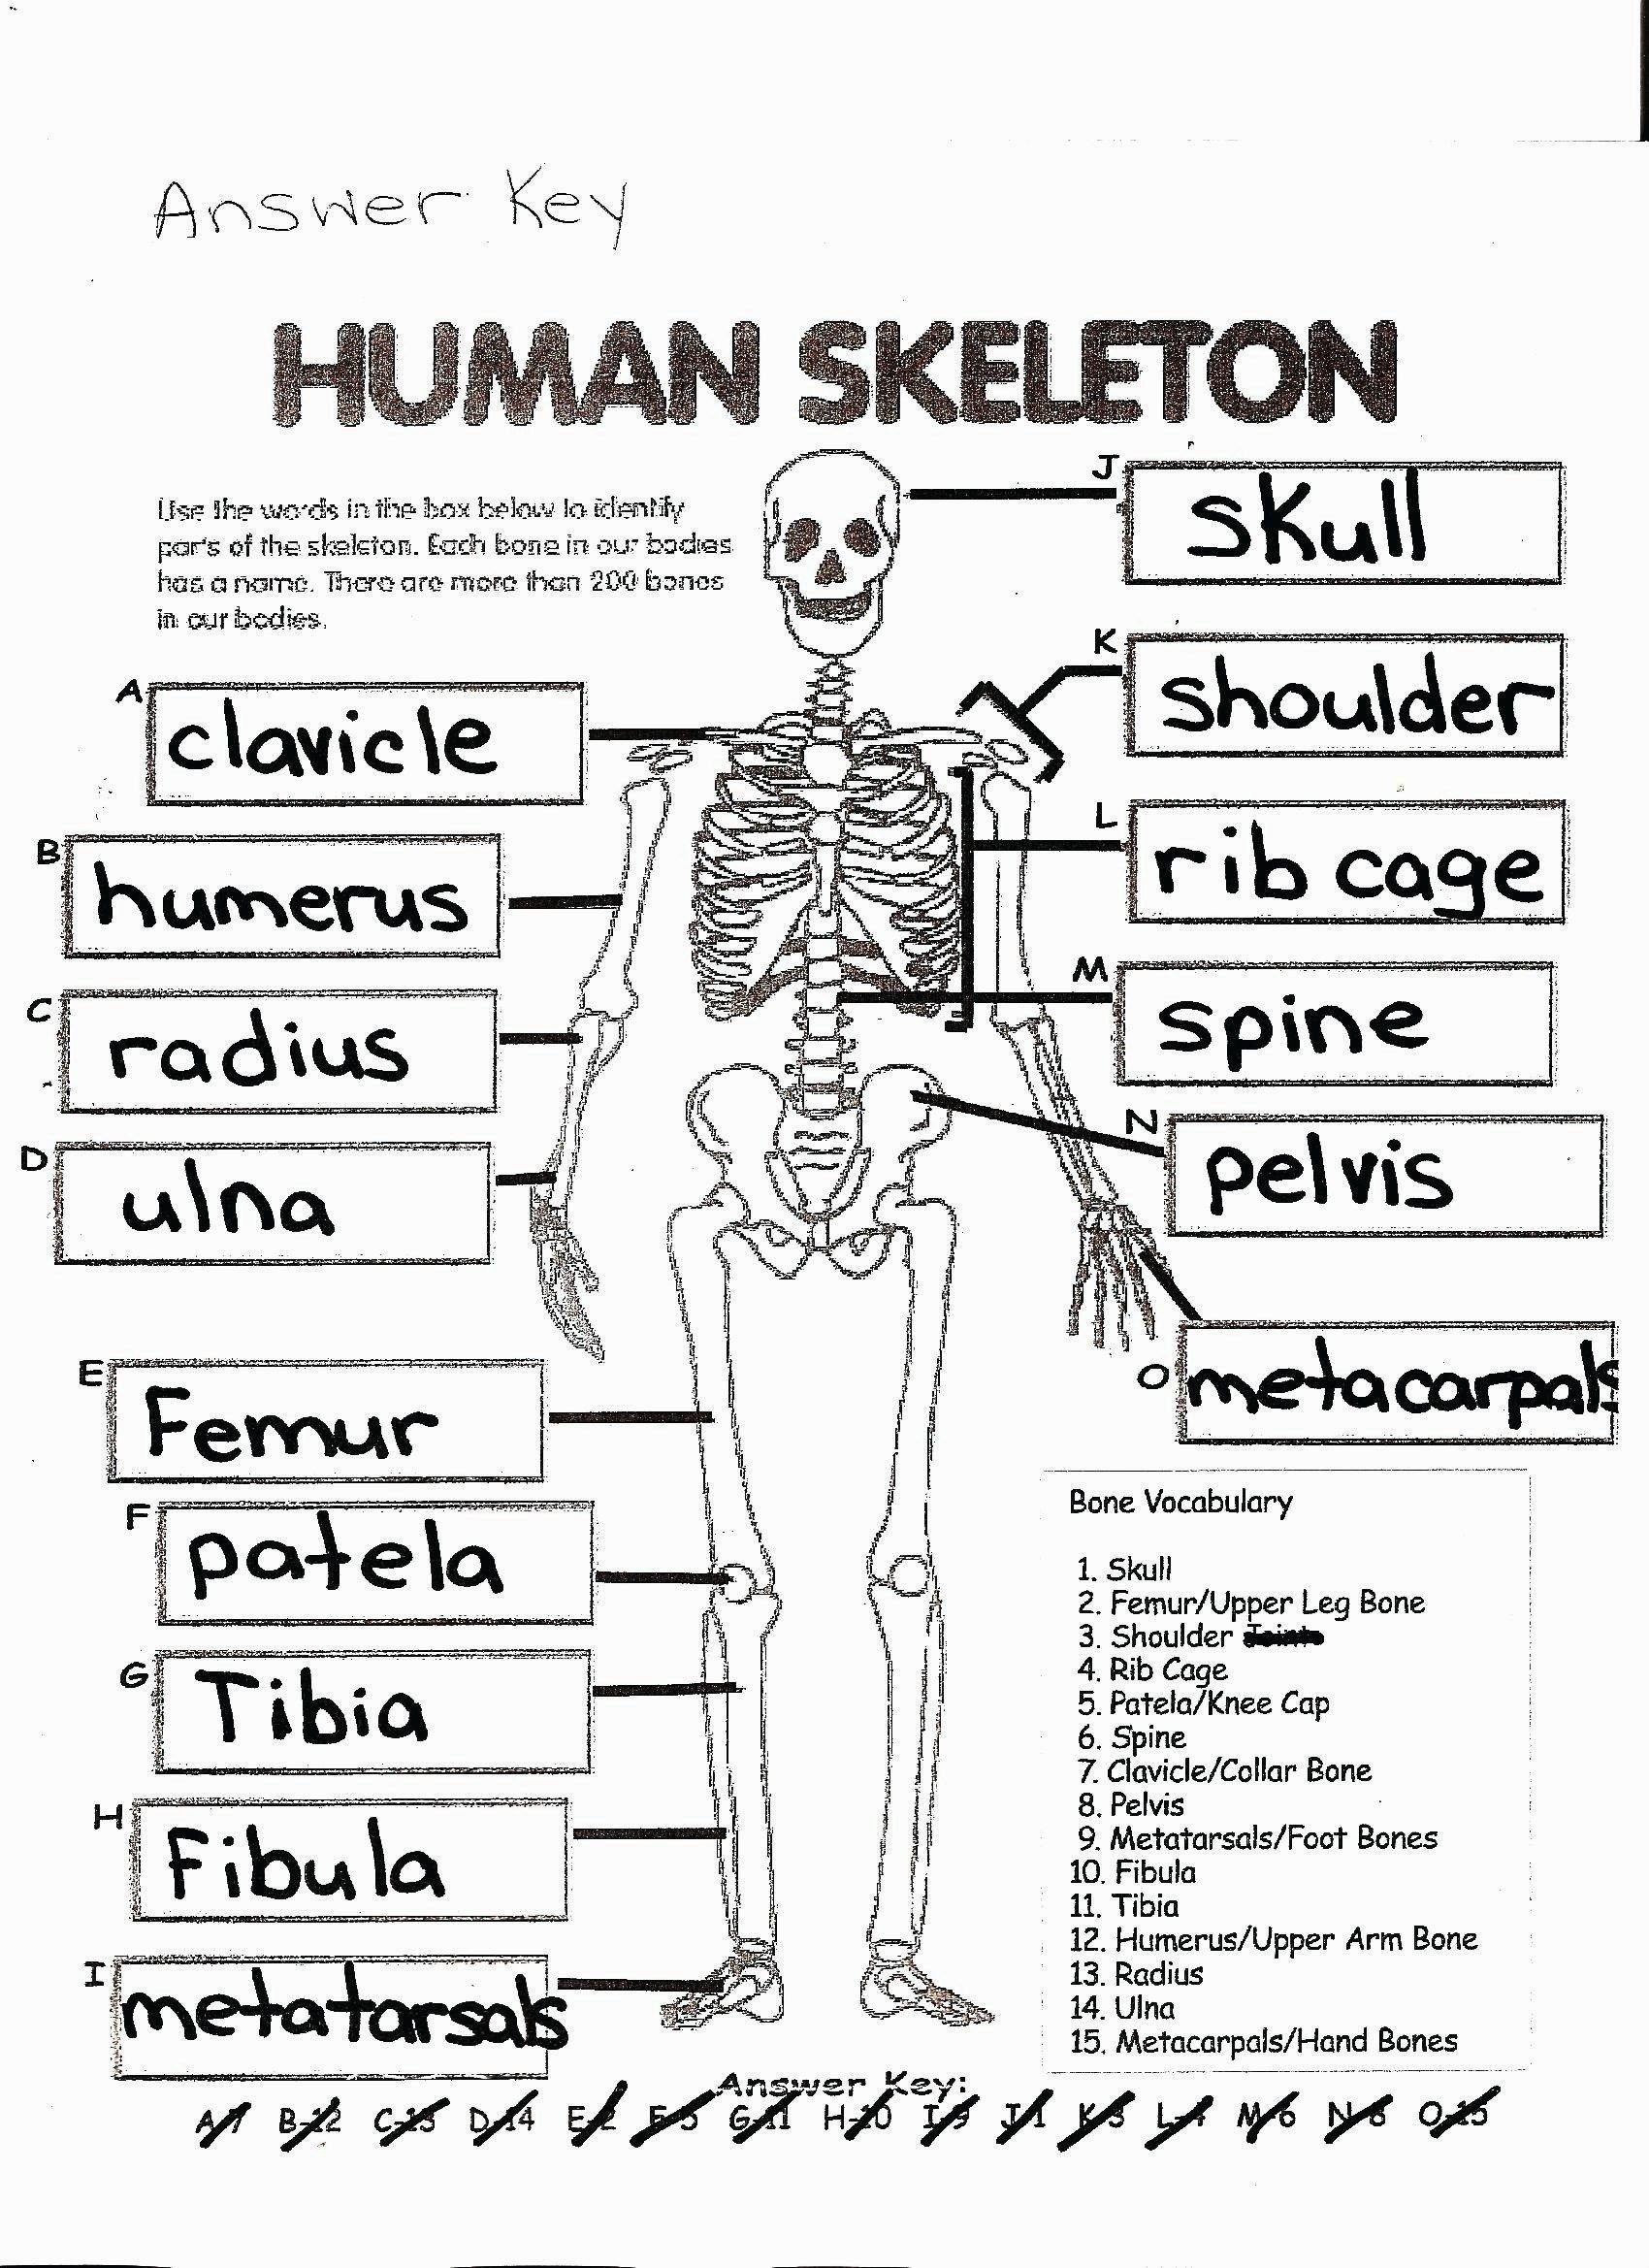 Endocrine System Coloring Worksheet Anatomy Coloring Pages Coloring Page Free Printable Human